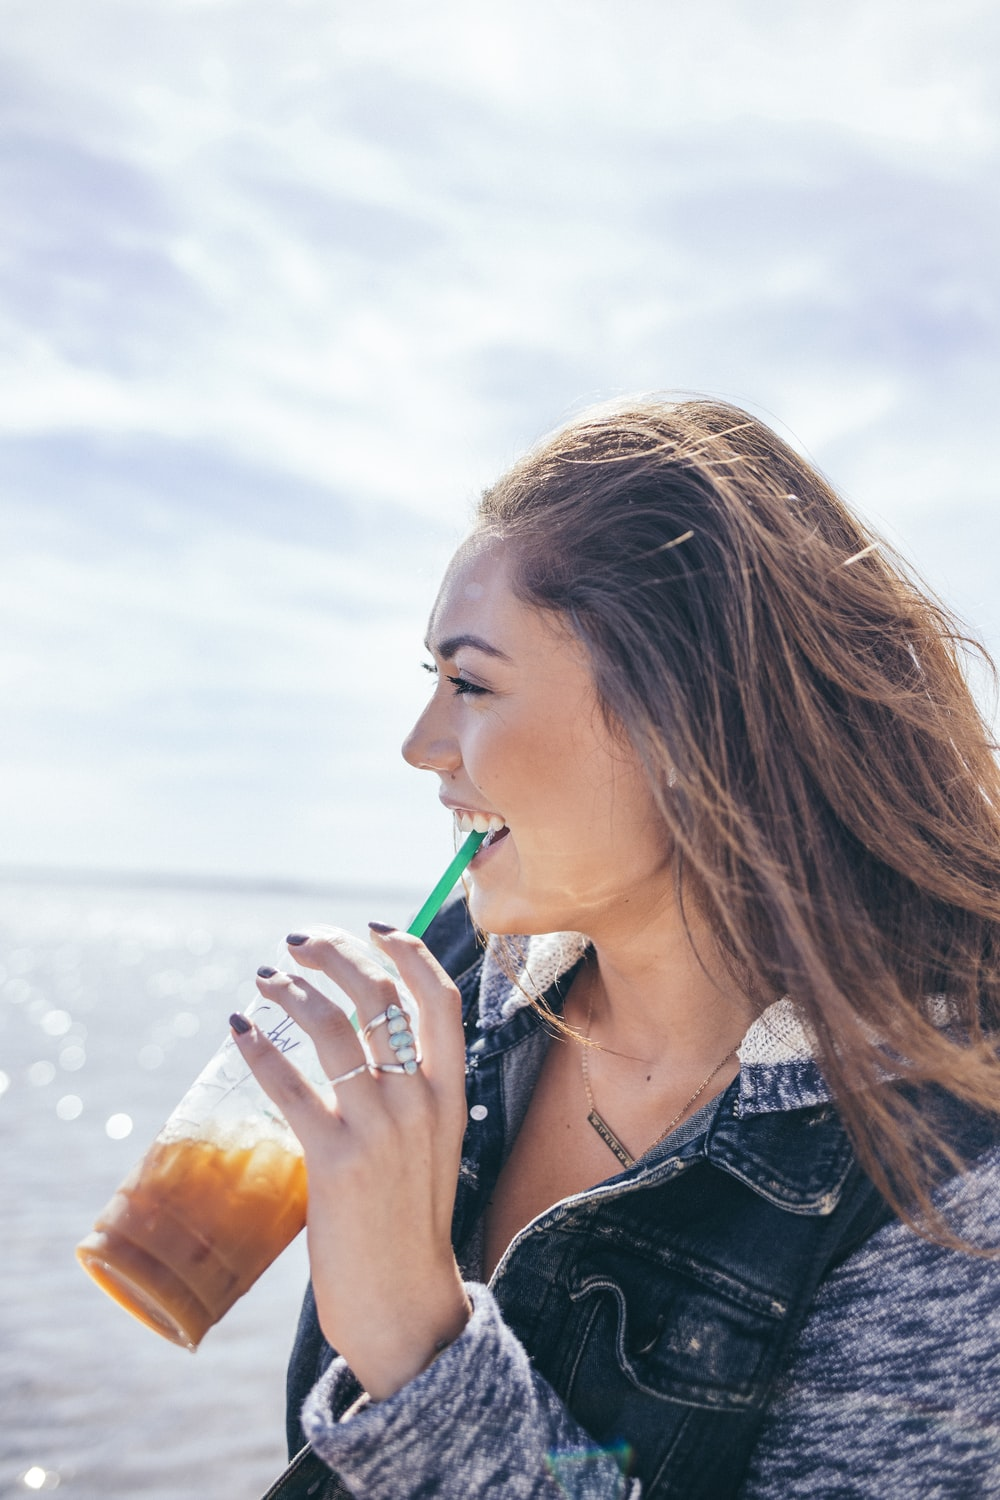 woman wearing black and grey jacket holding glass cup while drinking near body of water during daytime